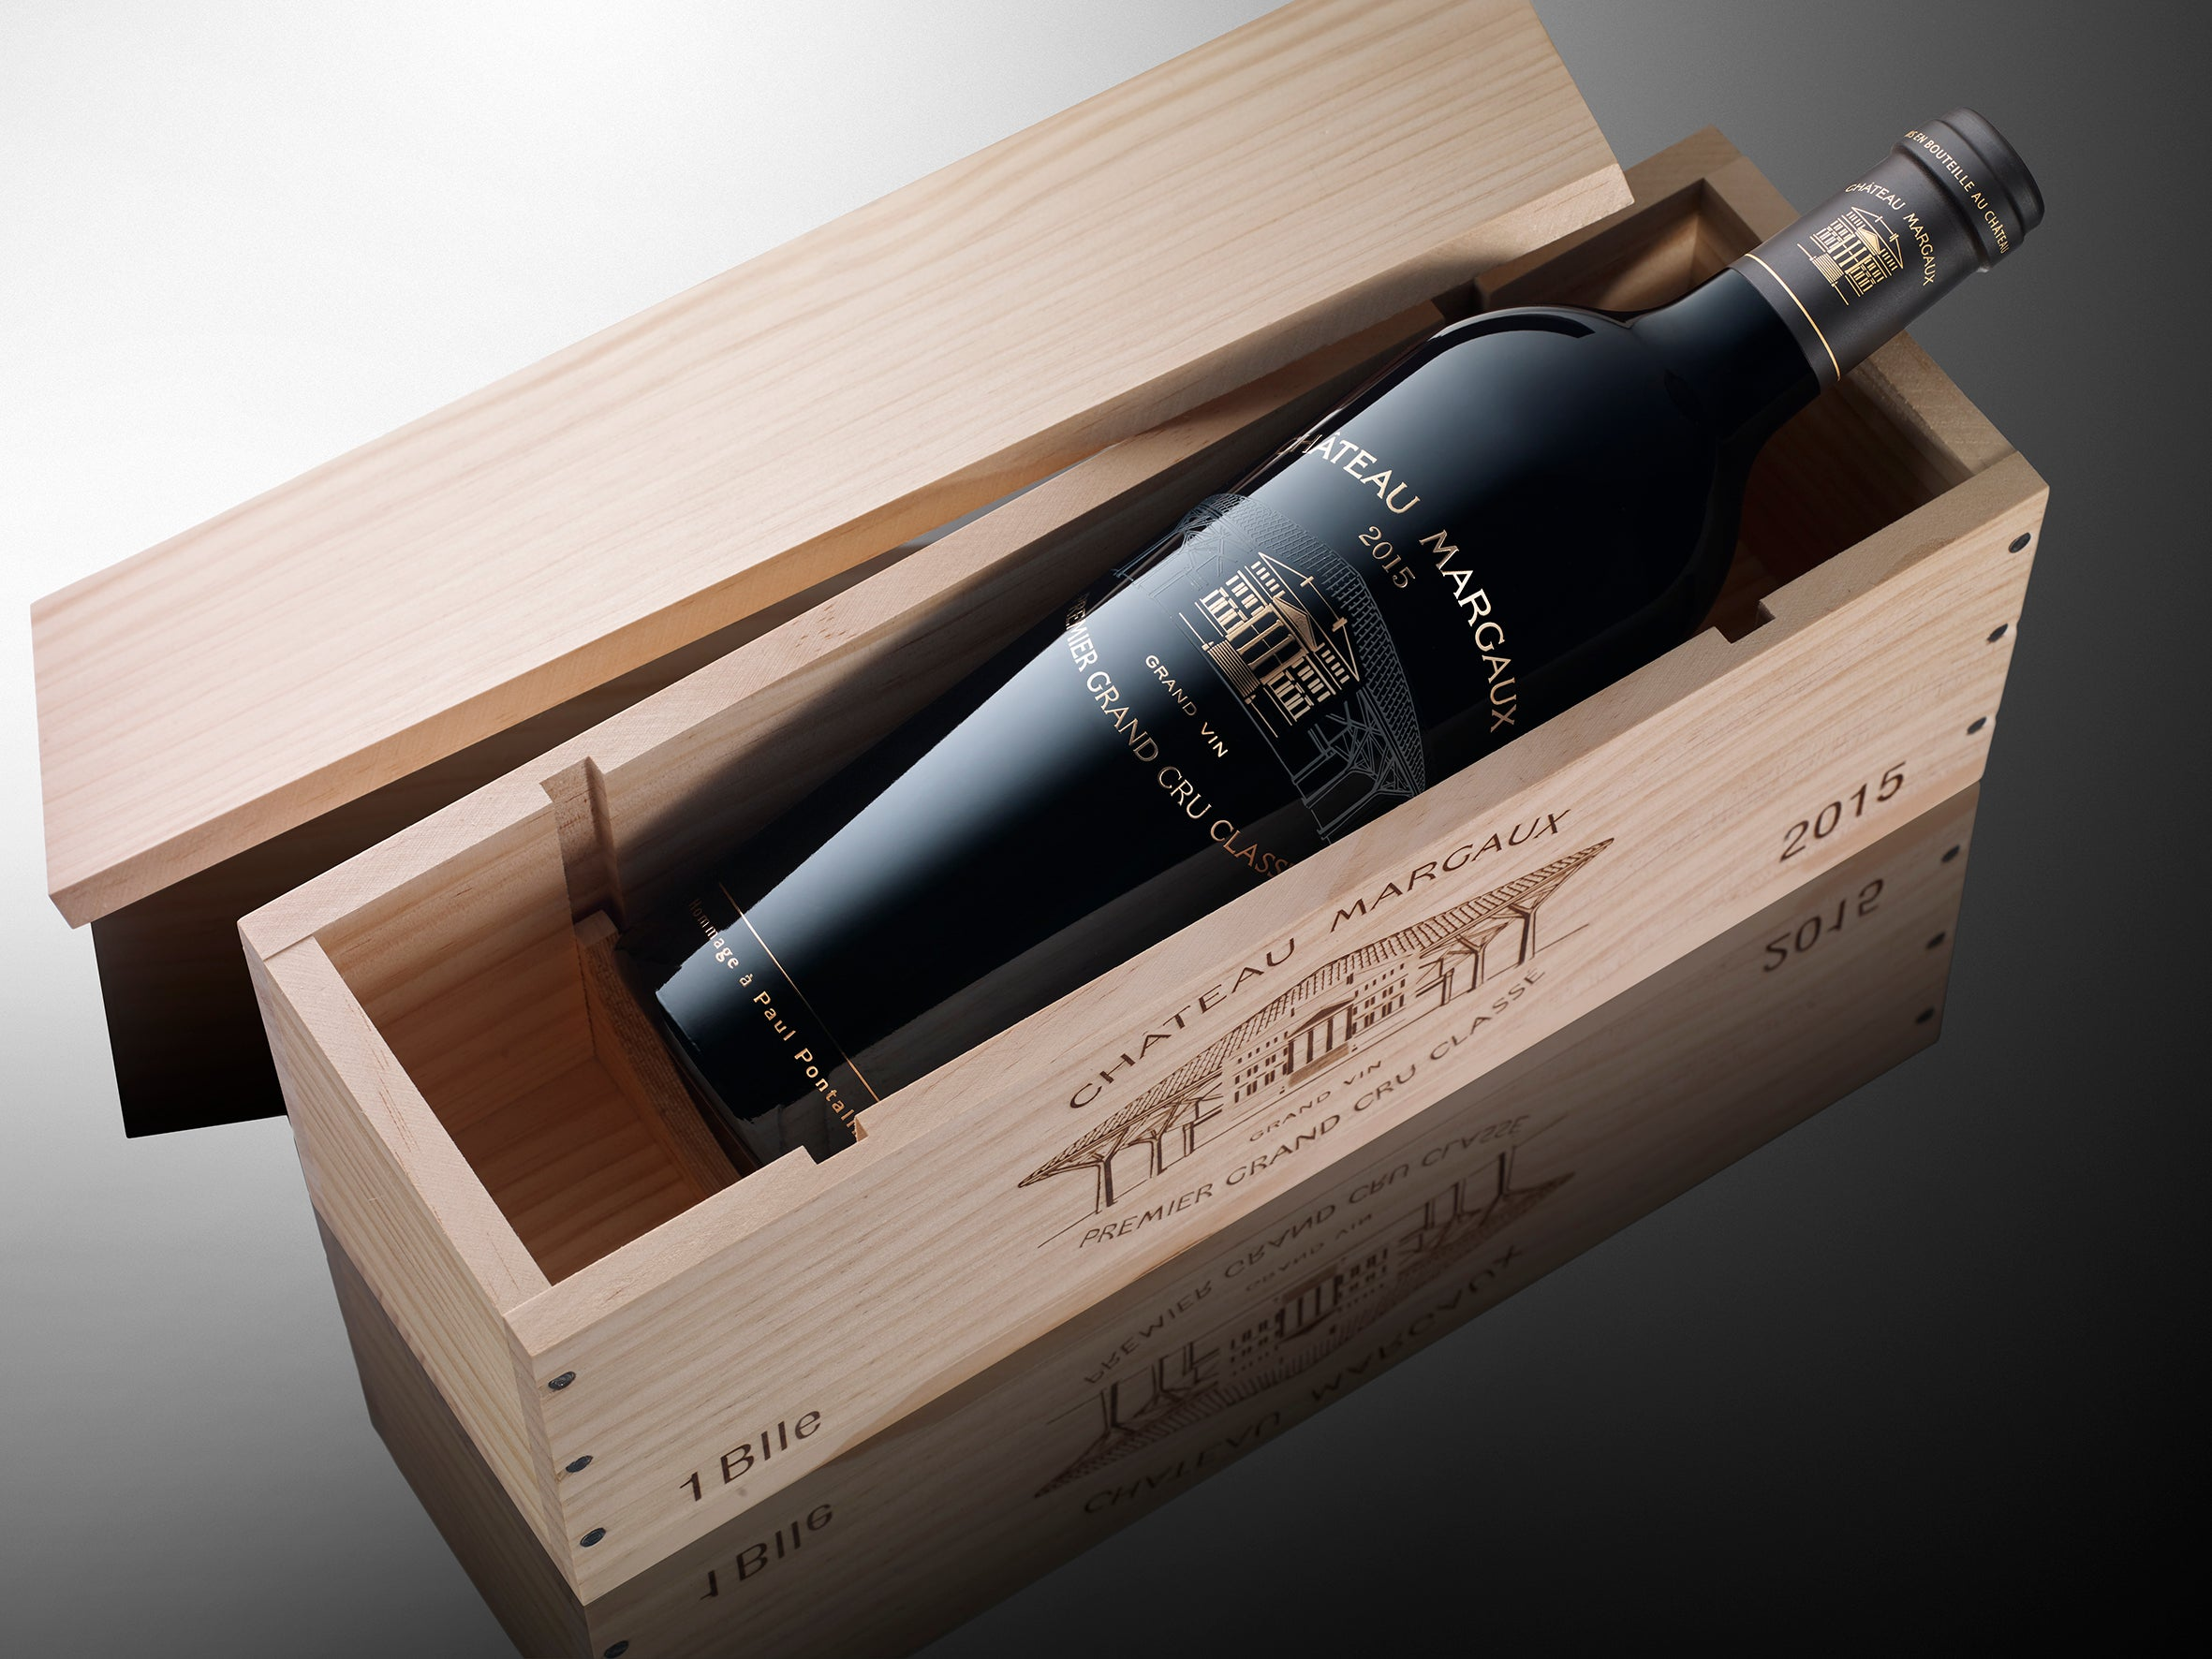 Chateau Margaux 2015 75cl btl in its case credits G. de Beauchene